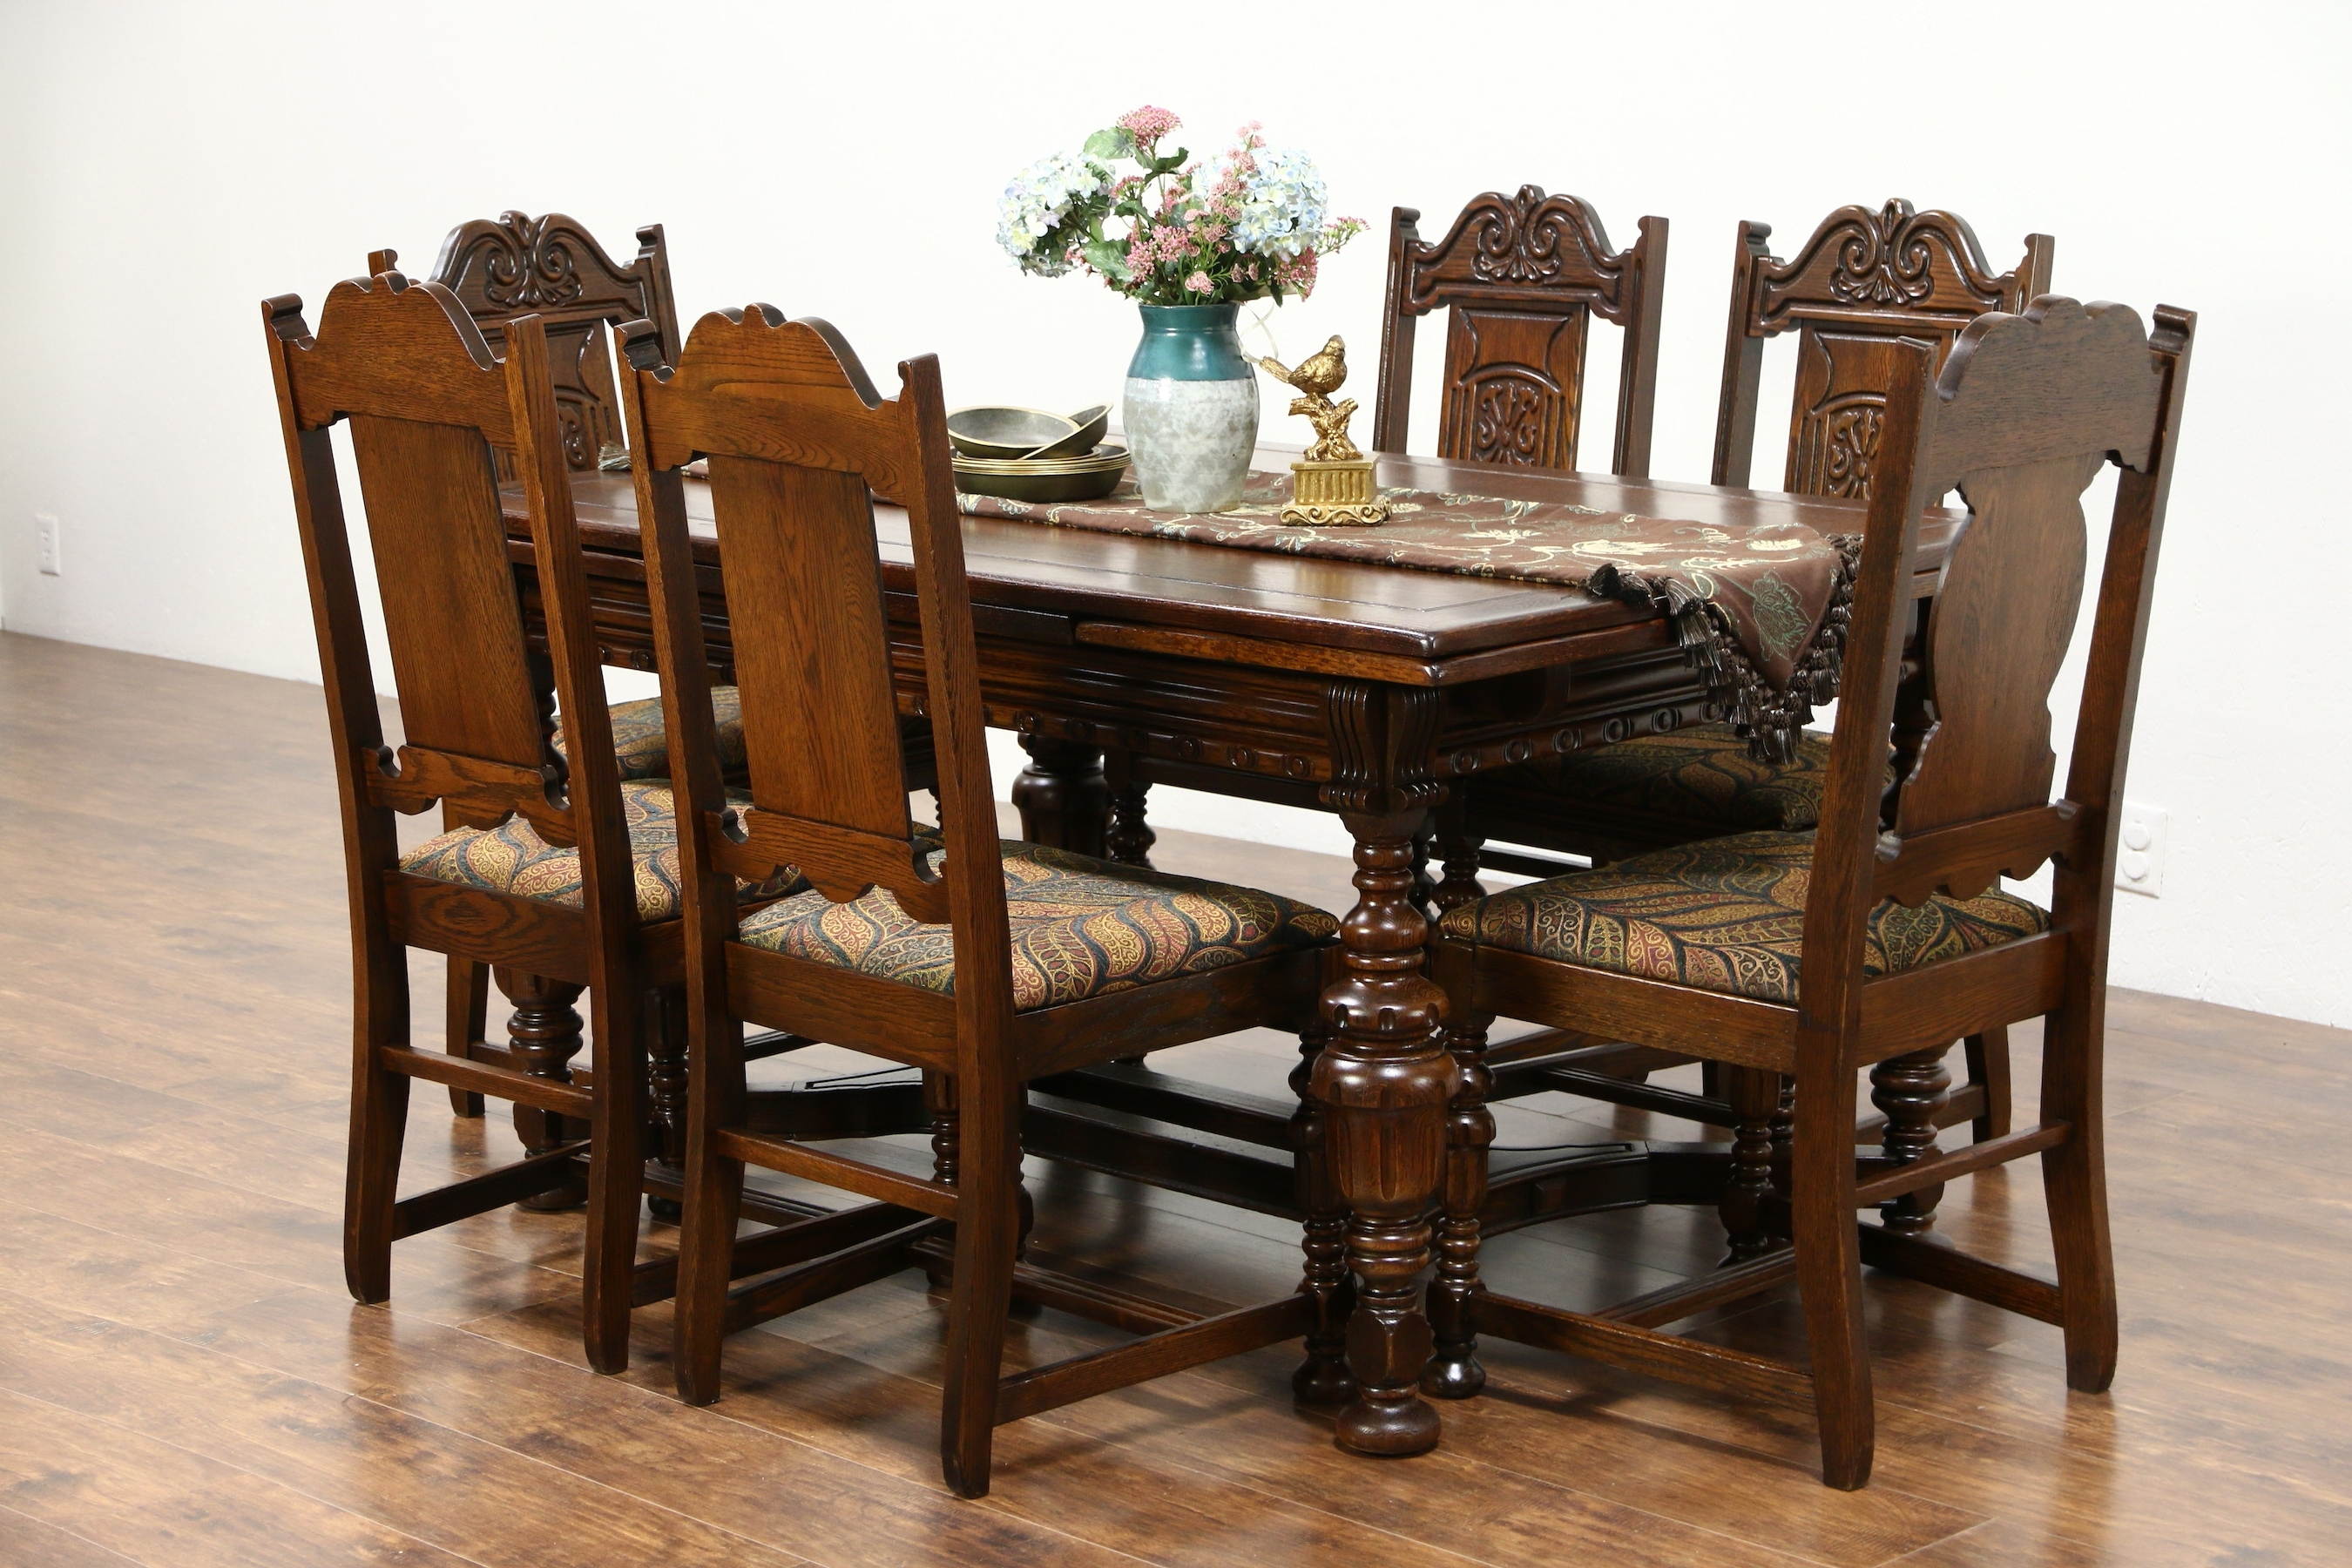 Latest Sold – Tudor 1925 Antique Carved Oak Dining Set, Table, 6 Chairs Within Oak Dining Tables With 6 Chairs (View 7 of 25)